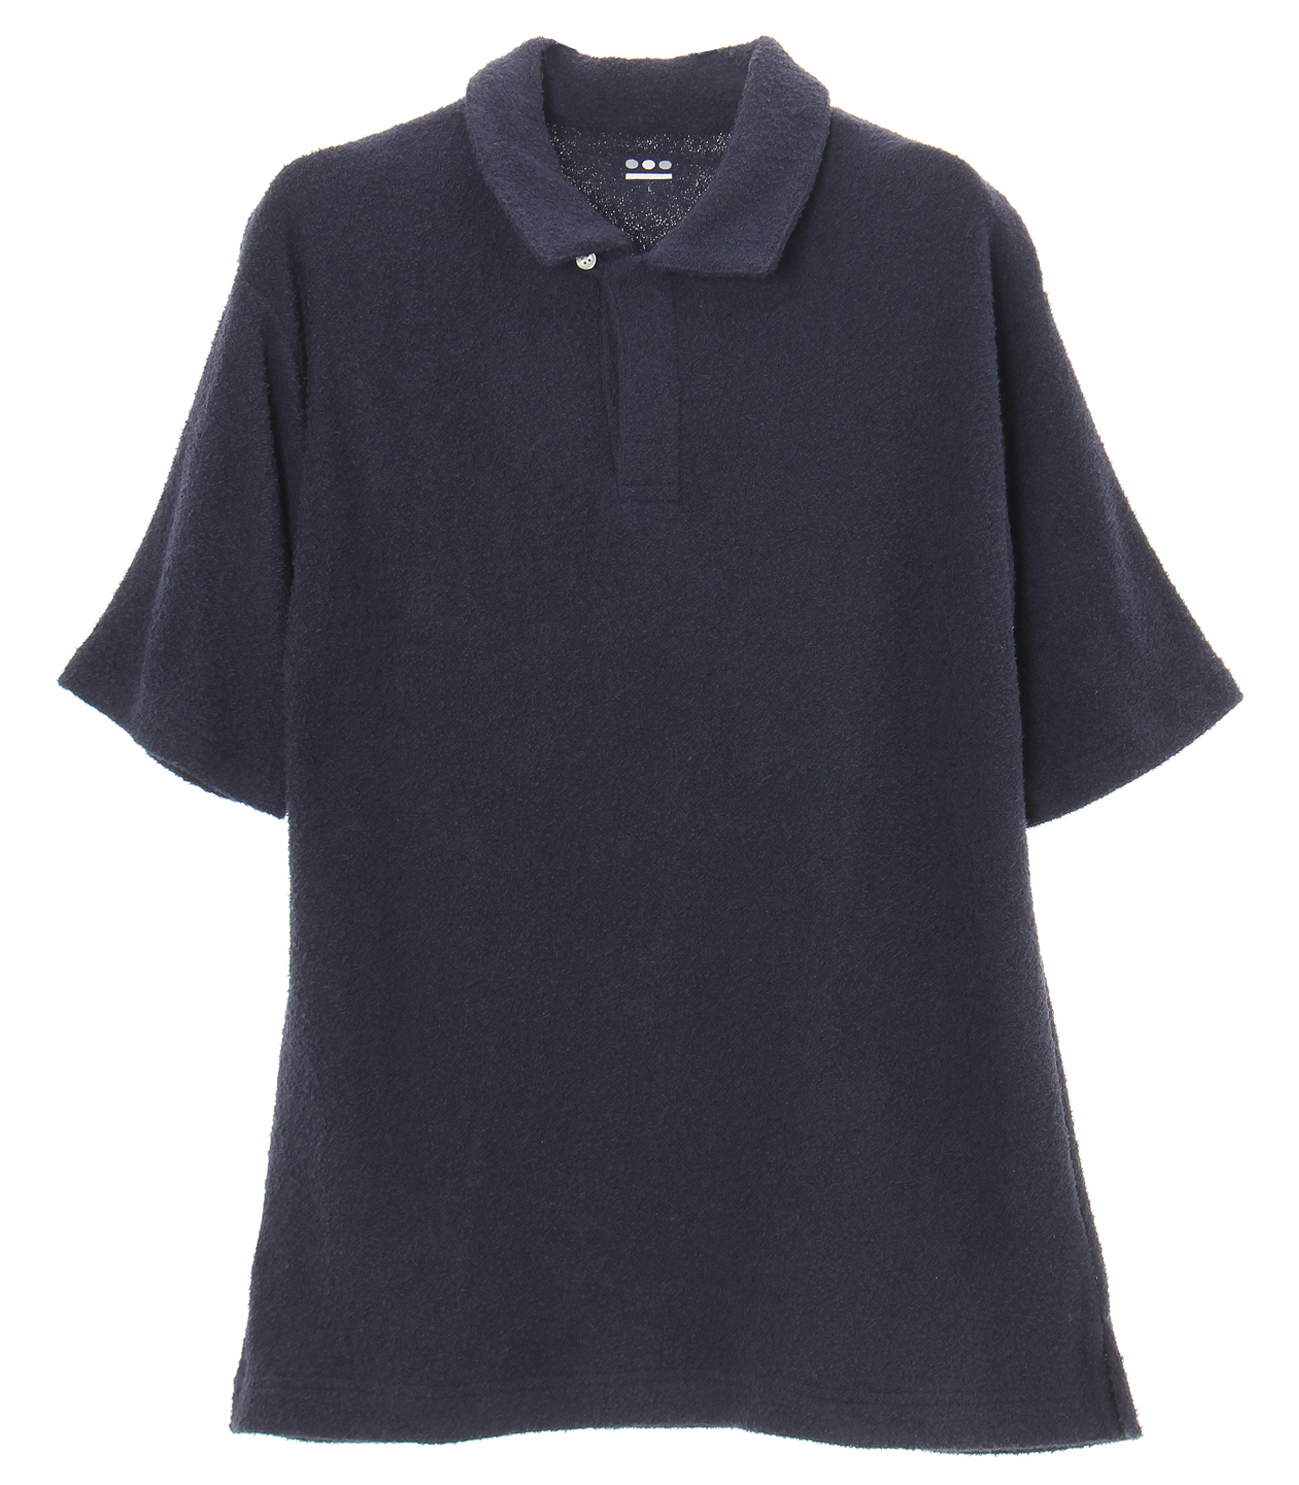 soft pile s/s skipper polo 詳細画像 navy 1